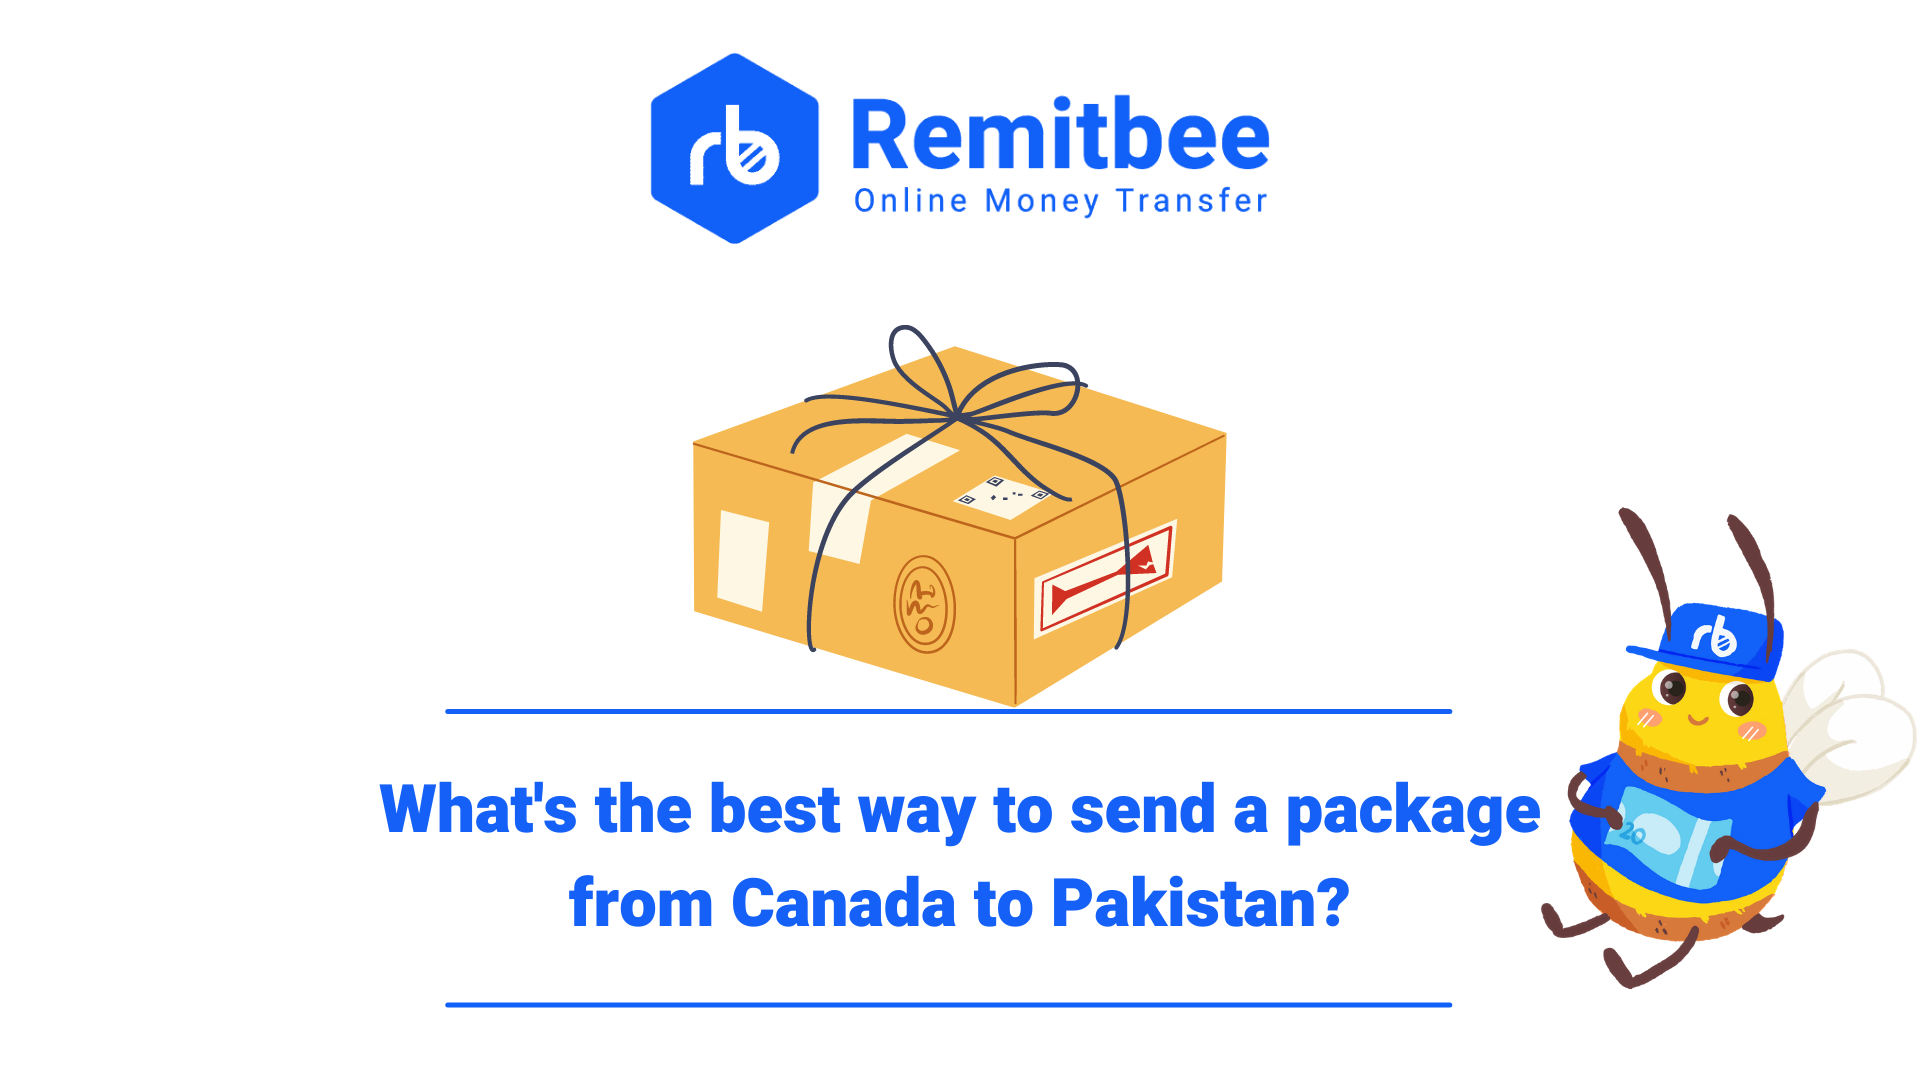 The complete guide on how to send your packages to loved ones in Pakistan from Canada